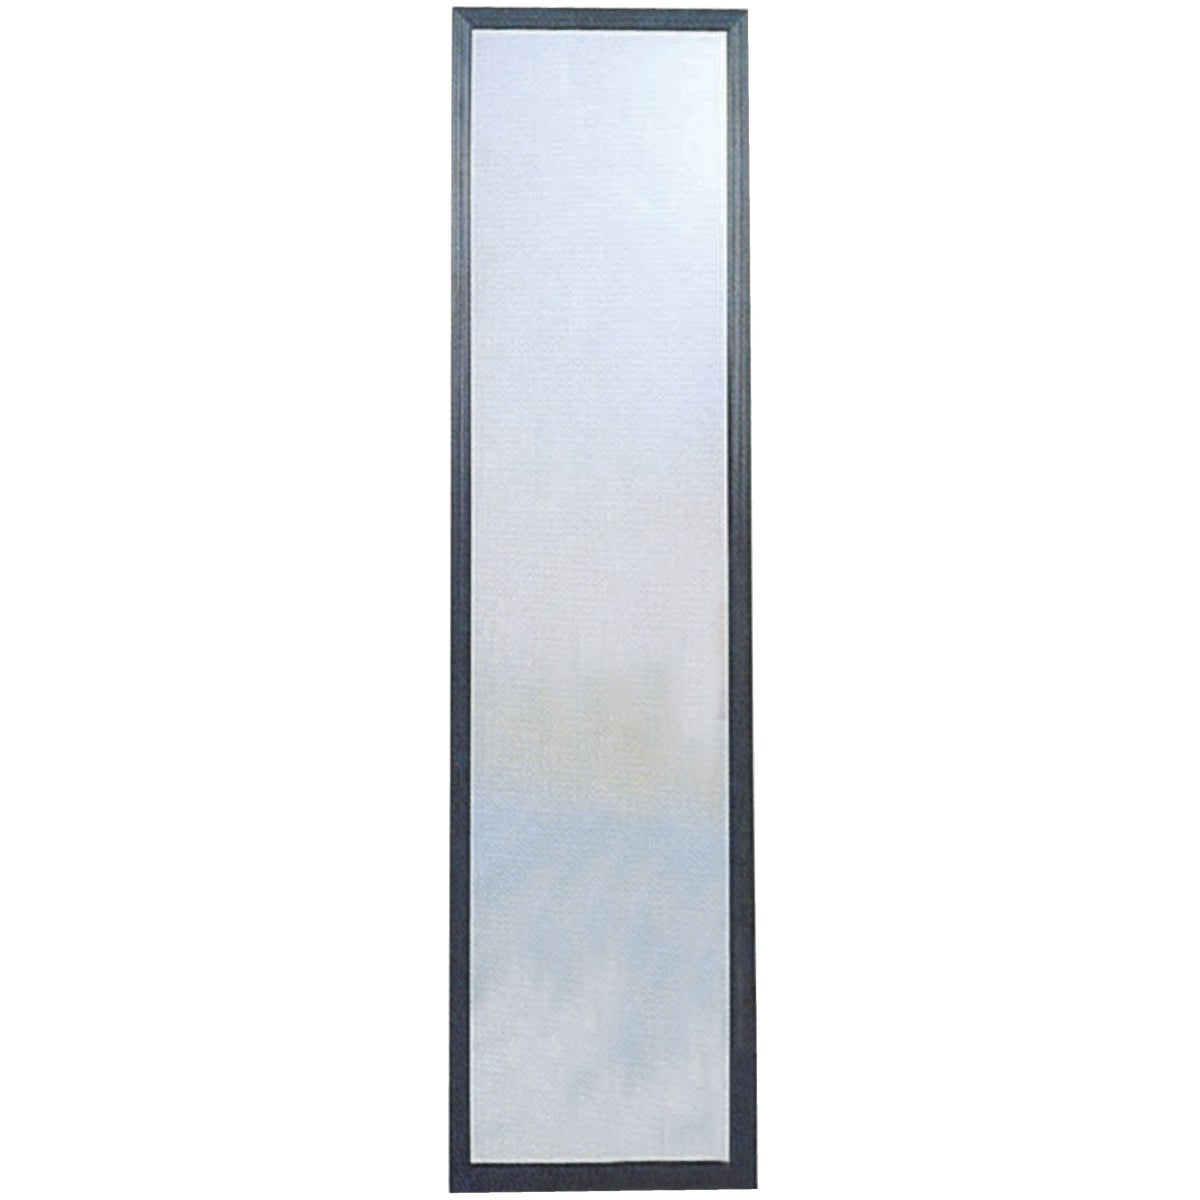 SUAVE BLK DOOR MIRROR - 20-6190 by Home Decor Innovatns